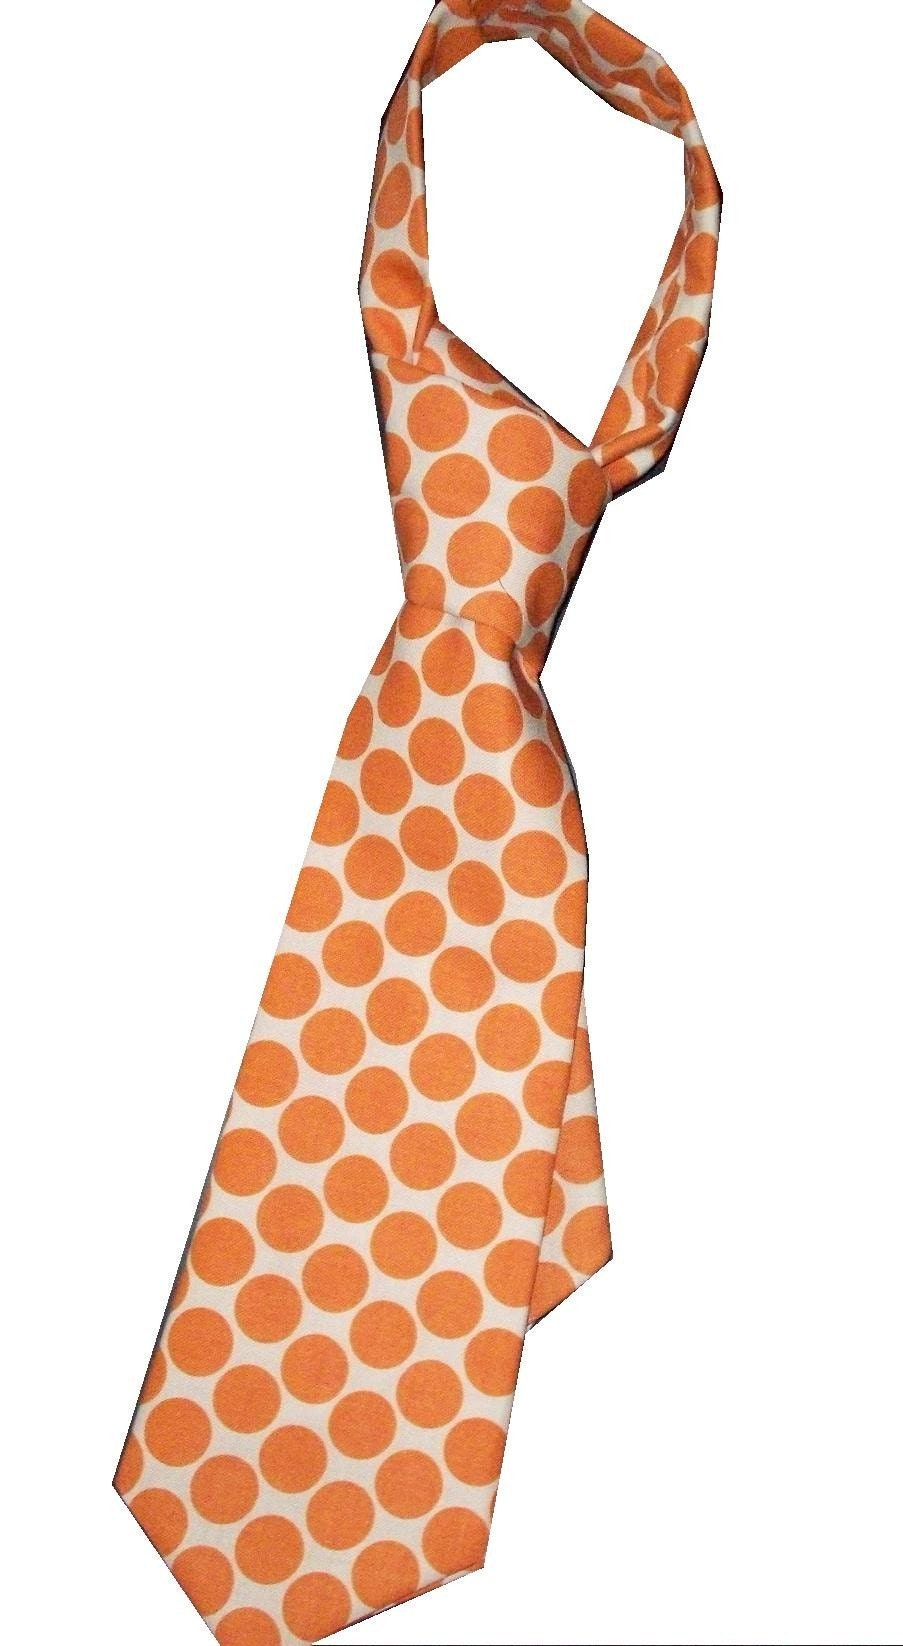 Boys Tie Amy Butler Moon Dots in Orange, YOU PICK SIZE